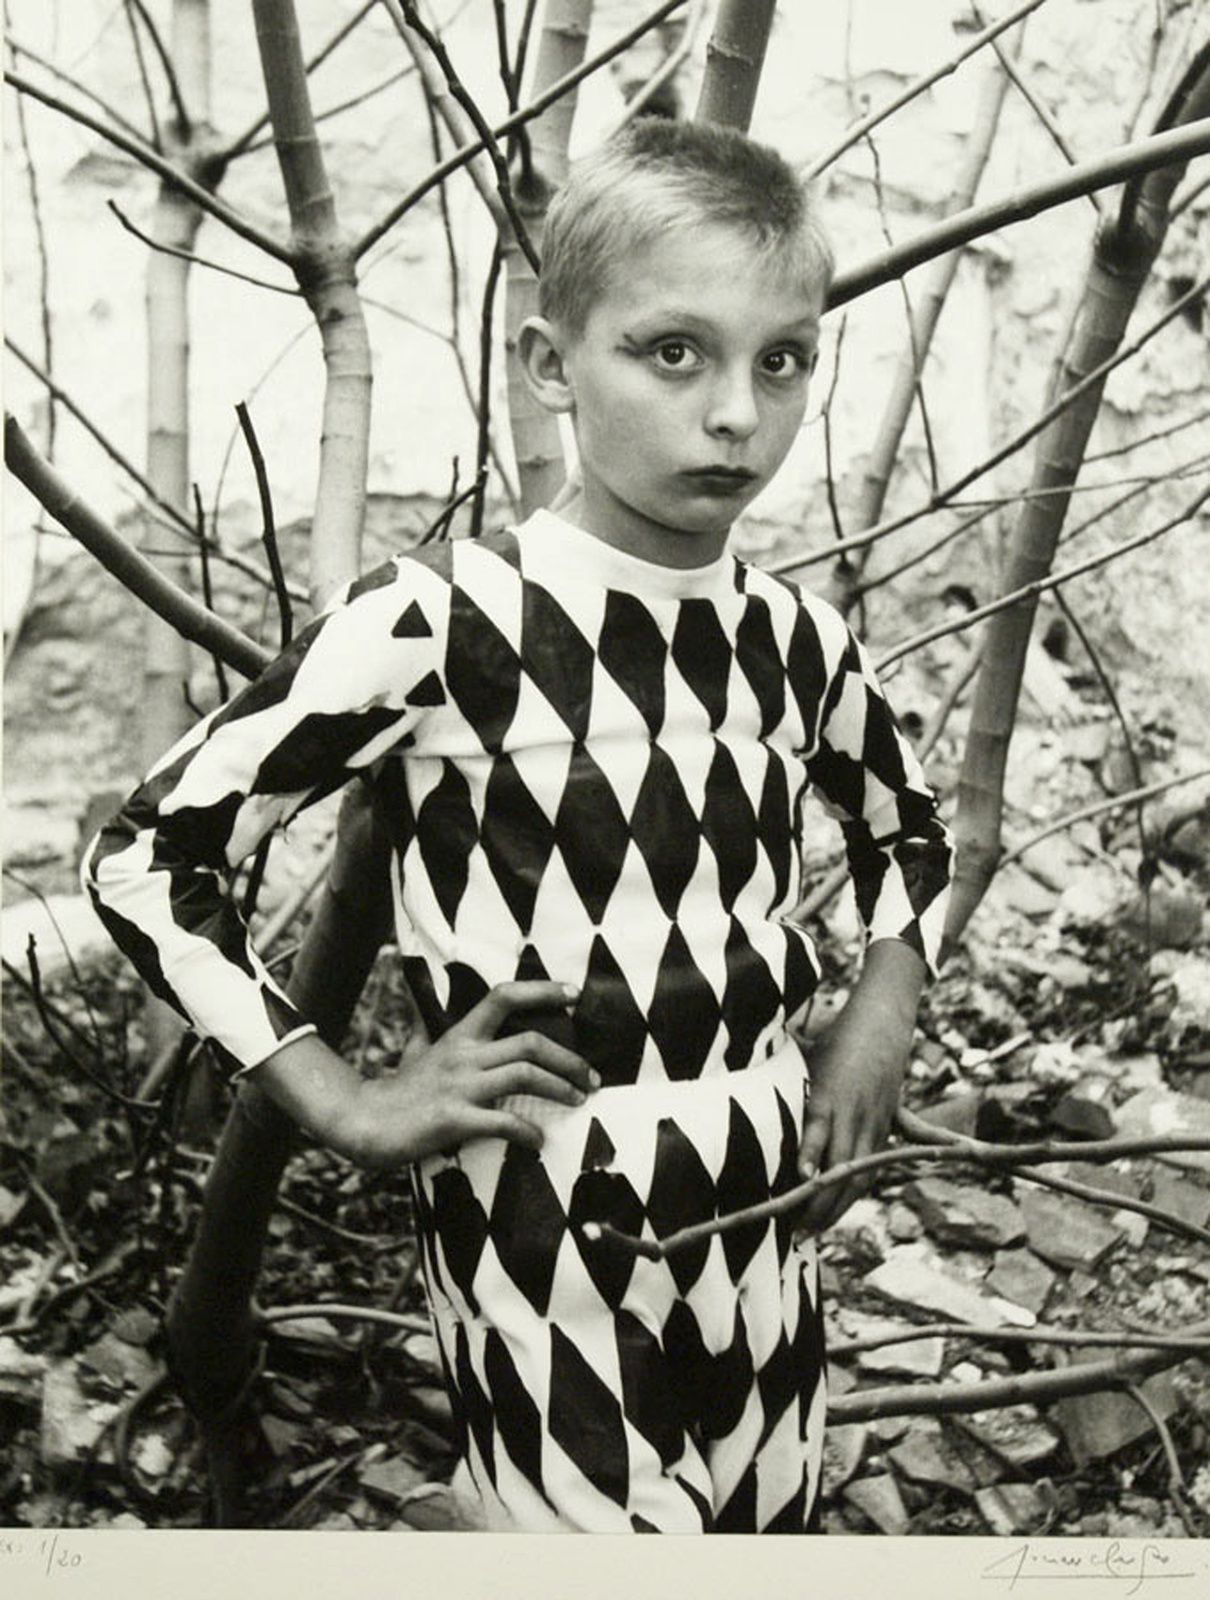 """Arlequin, Saltimbanques, Arles"", 1955 de Lucien Clergue - Courtesy Galerie Patrice Trigano"